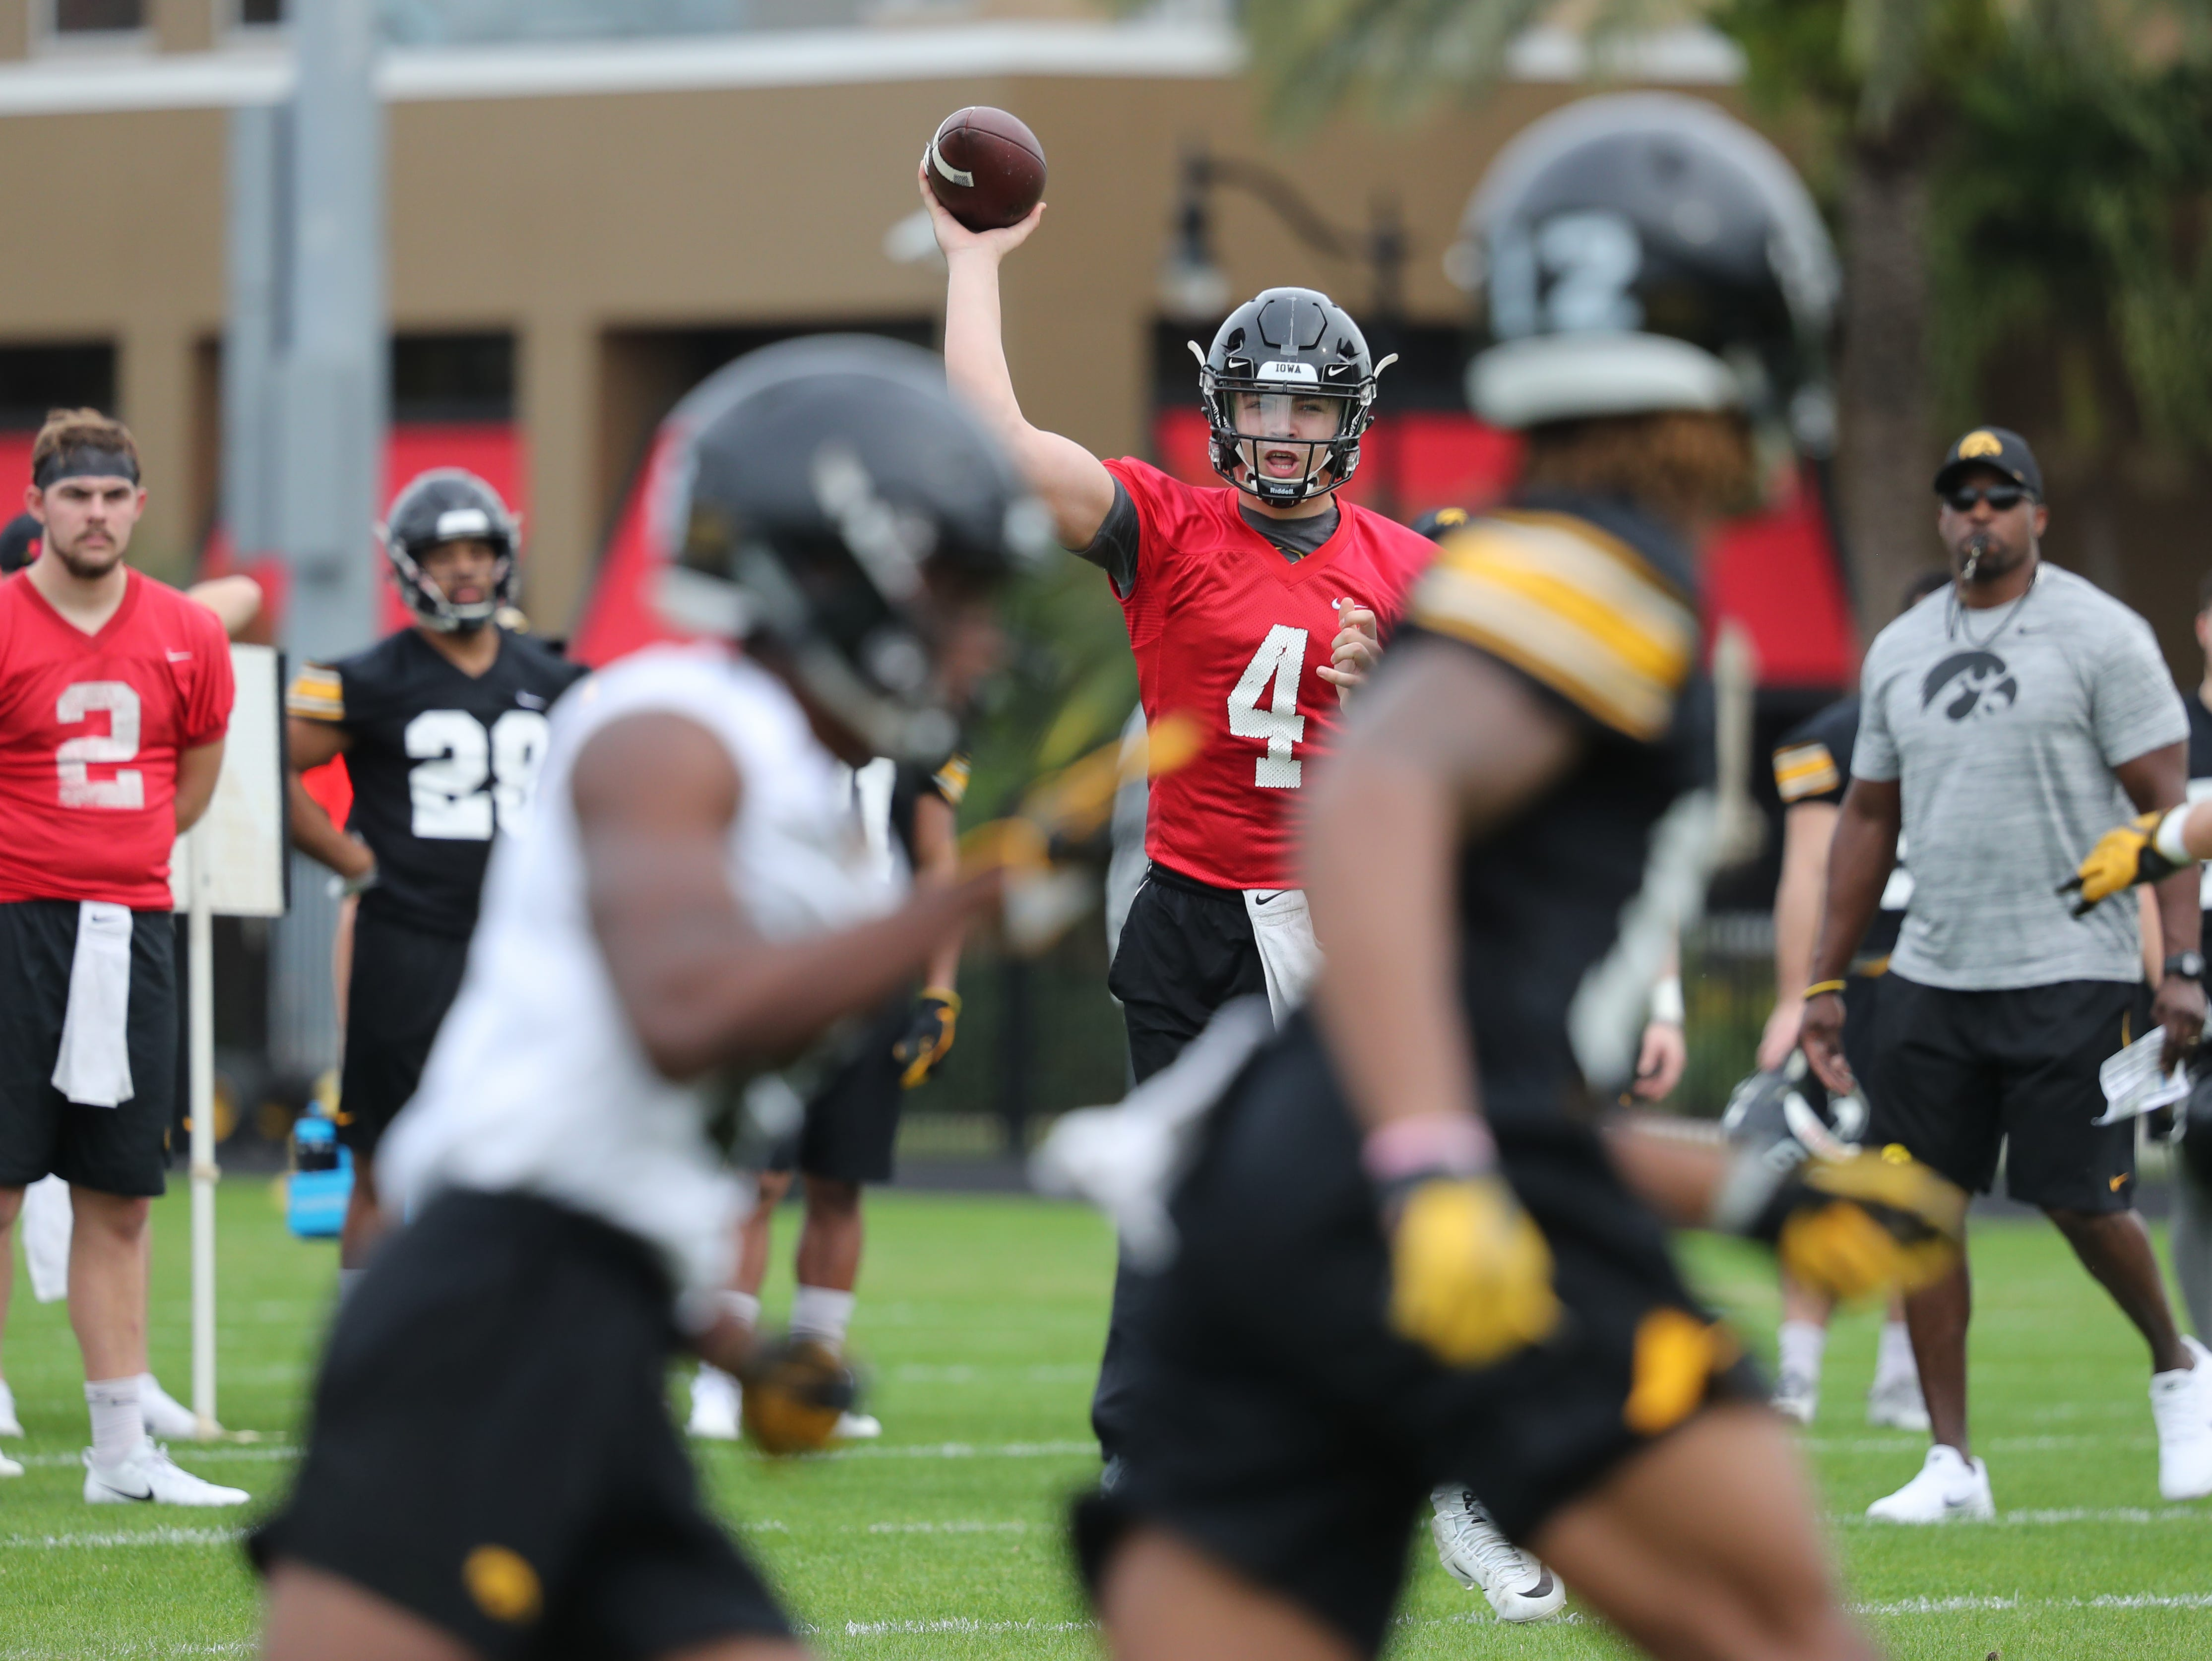 Iowa Hawkeyes quarterback Nate Stanley (4) during the team's first Outback Bowl Practice in Florida Thursday, December 27, 2018 at Tampa University.